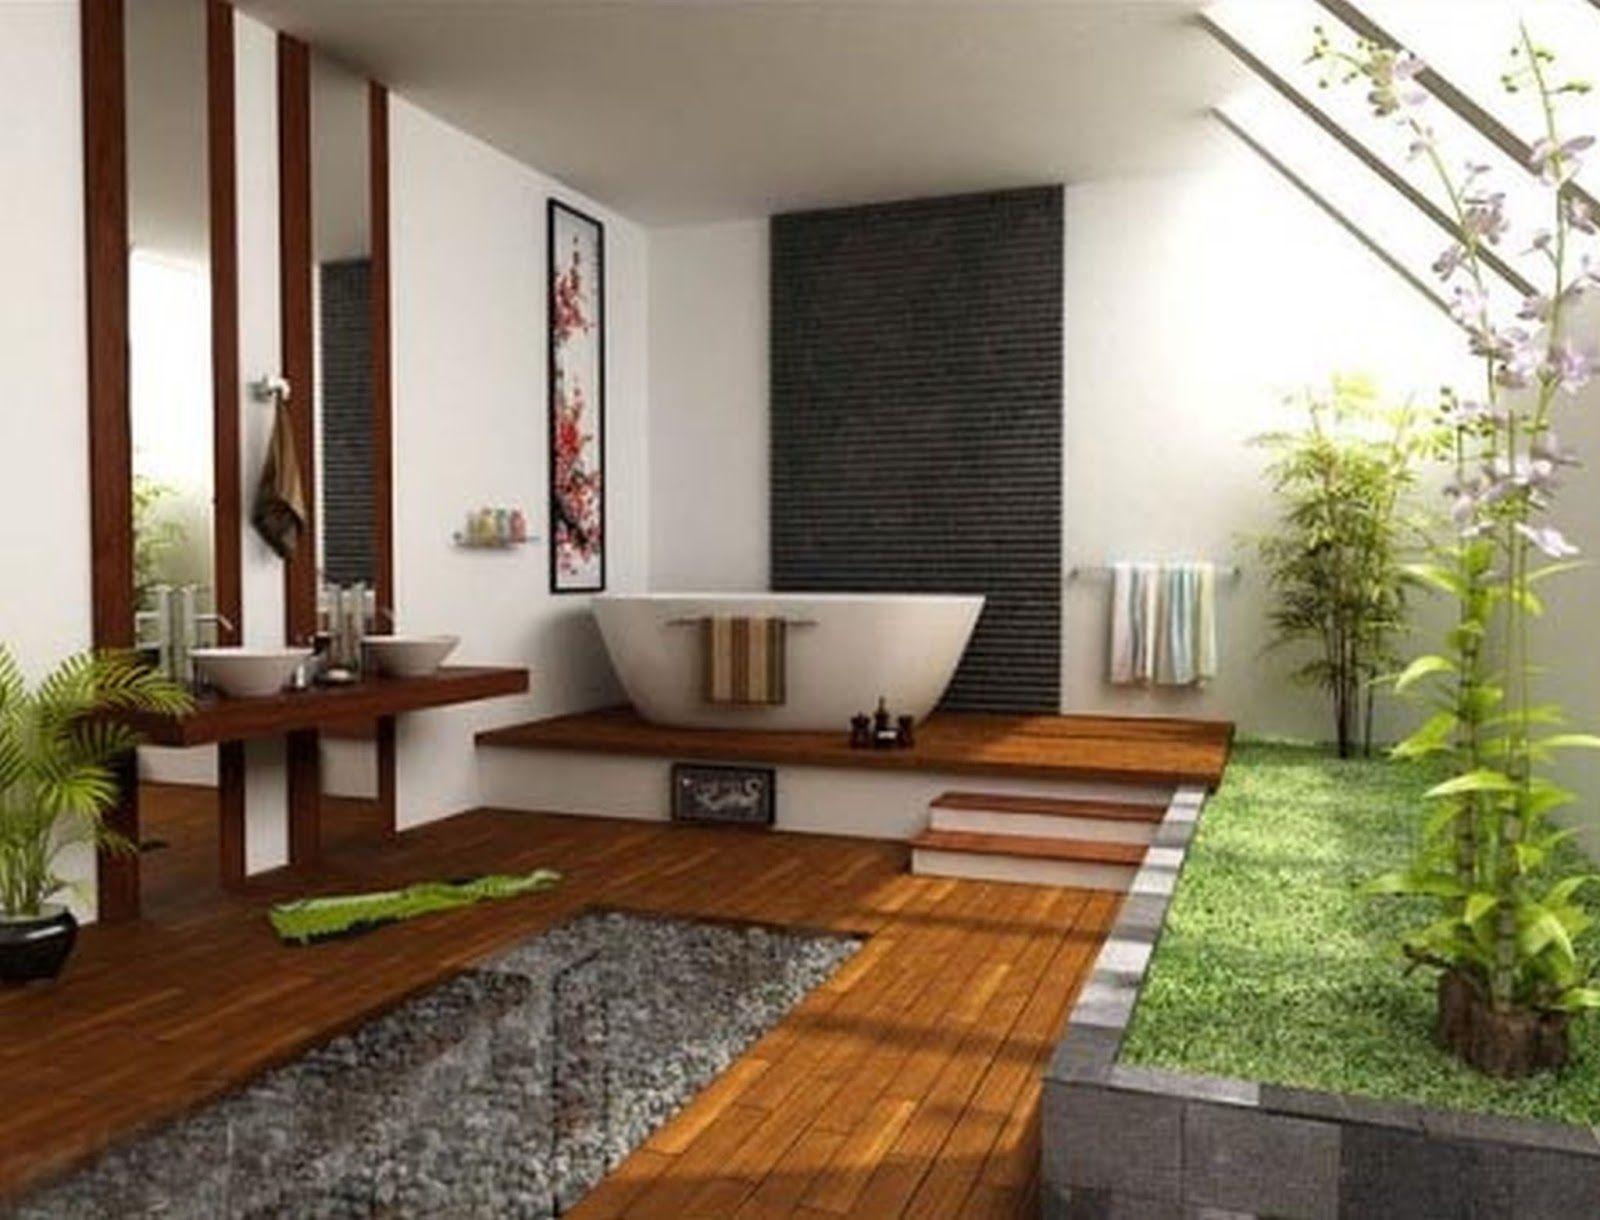 Salle De Bain Style Nature ~ Domokur Camp Design Harmonizing Architecture And Nature The Art Of